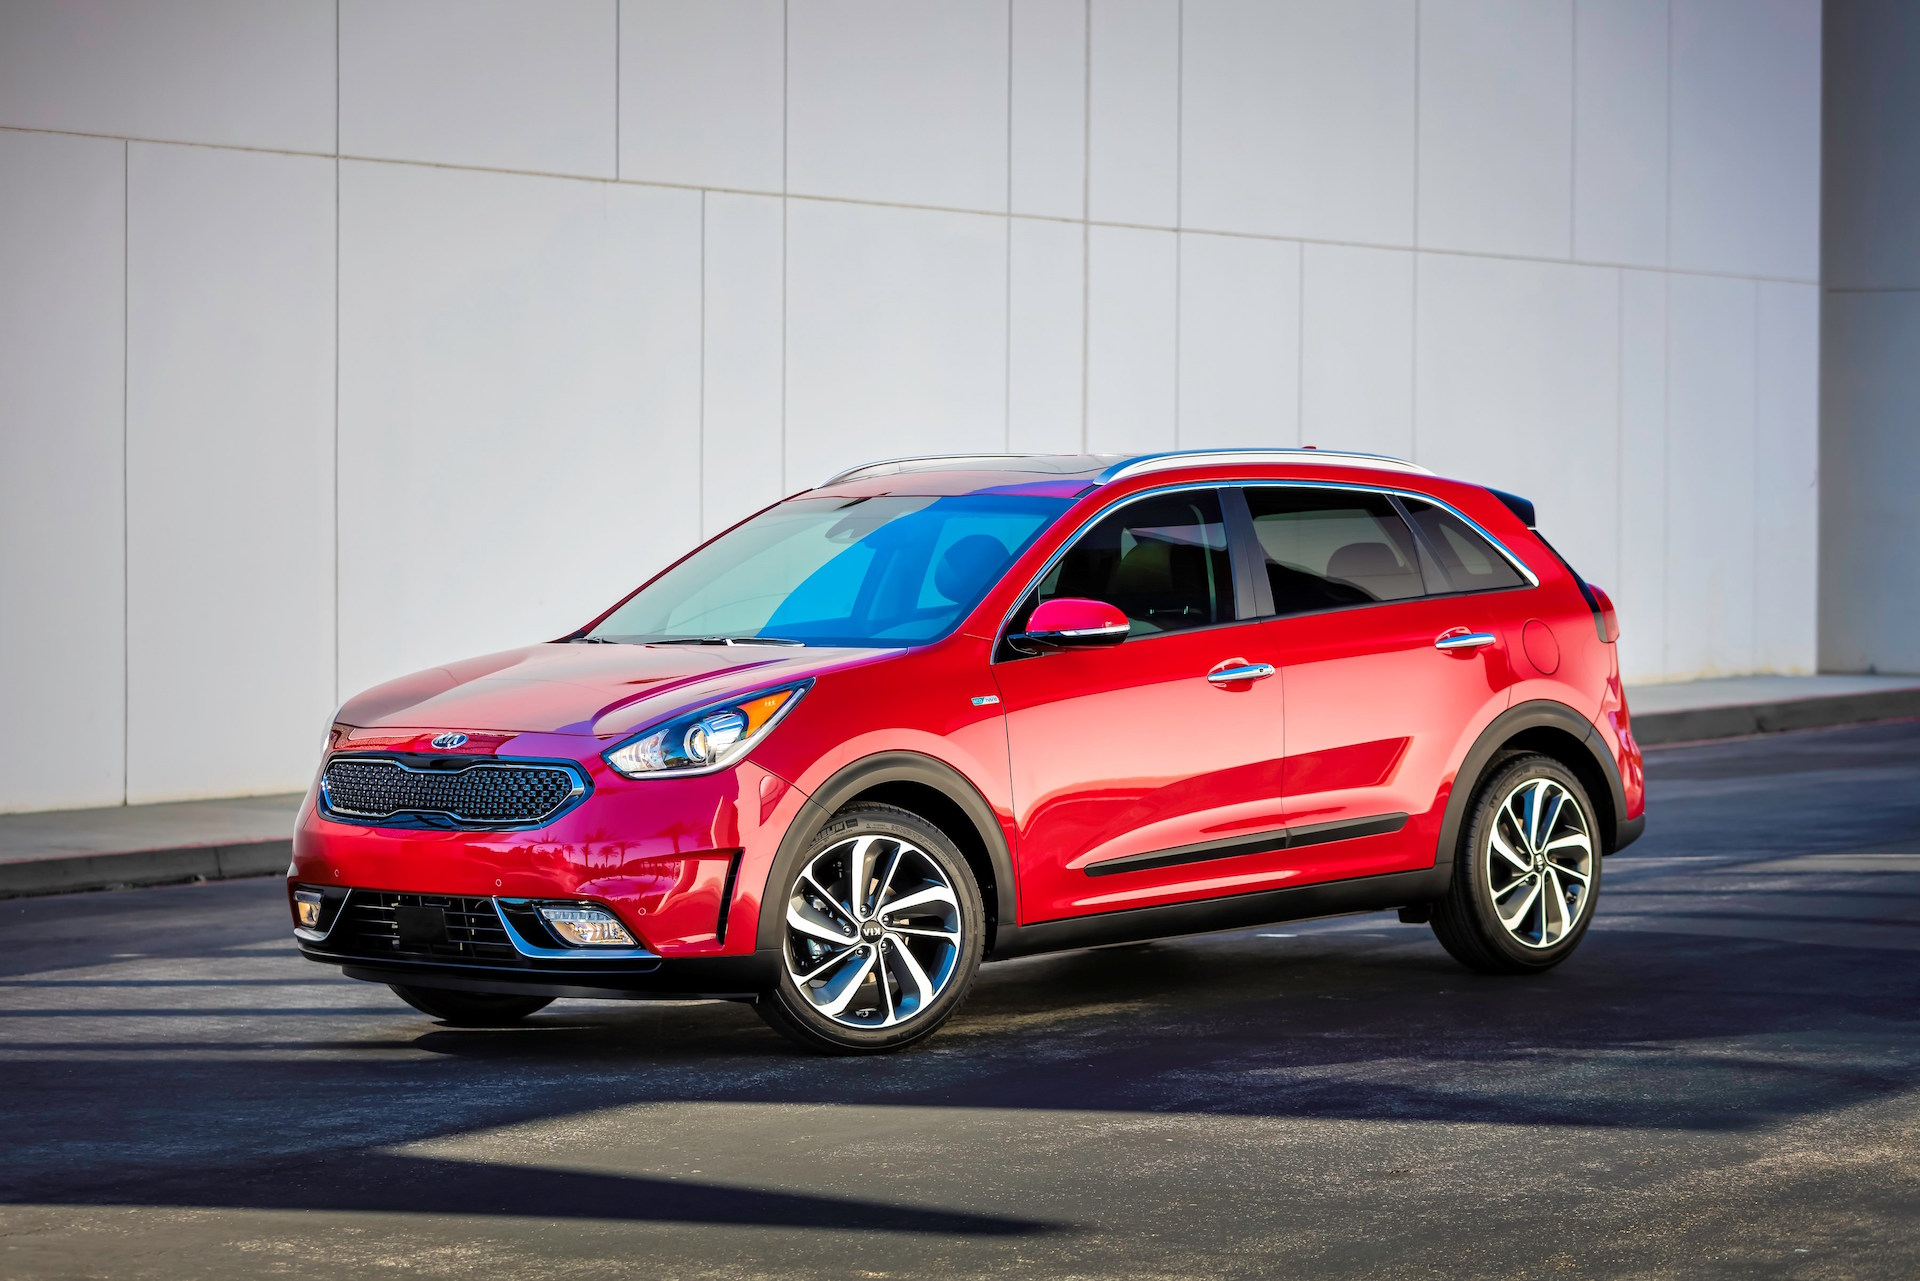 2017 kia niro hybrid suv are electric awd versions in autos post. Black Bedroom Furniture Sets. Home Design Ideas